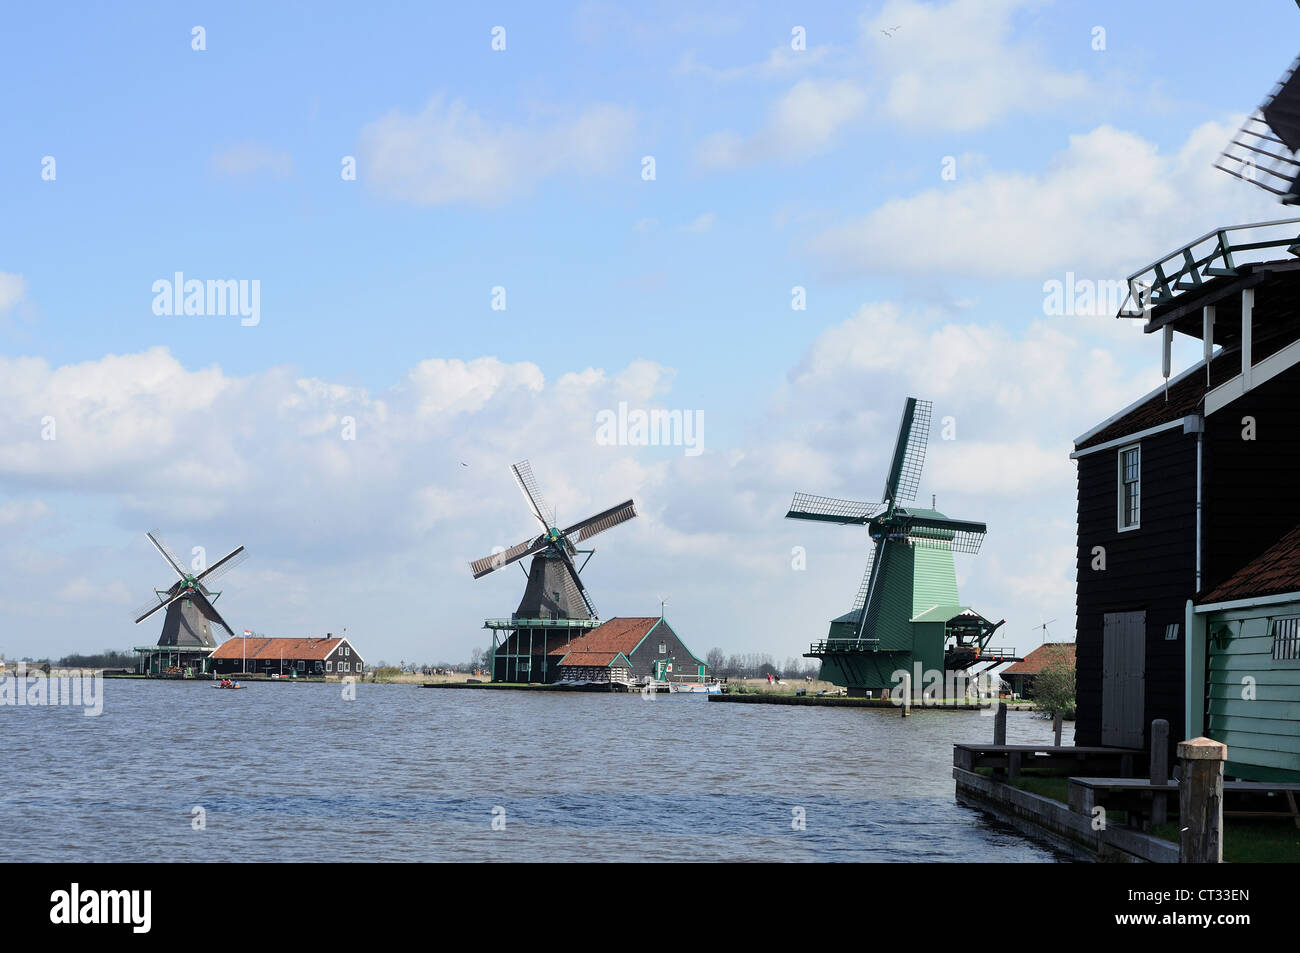 windmills, Zaanse Schans view of traditional windmills at touristic location, shot in bright spring light - Stock Image